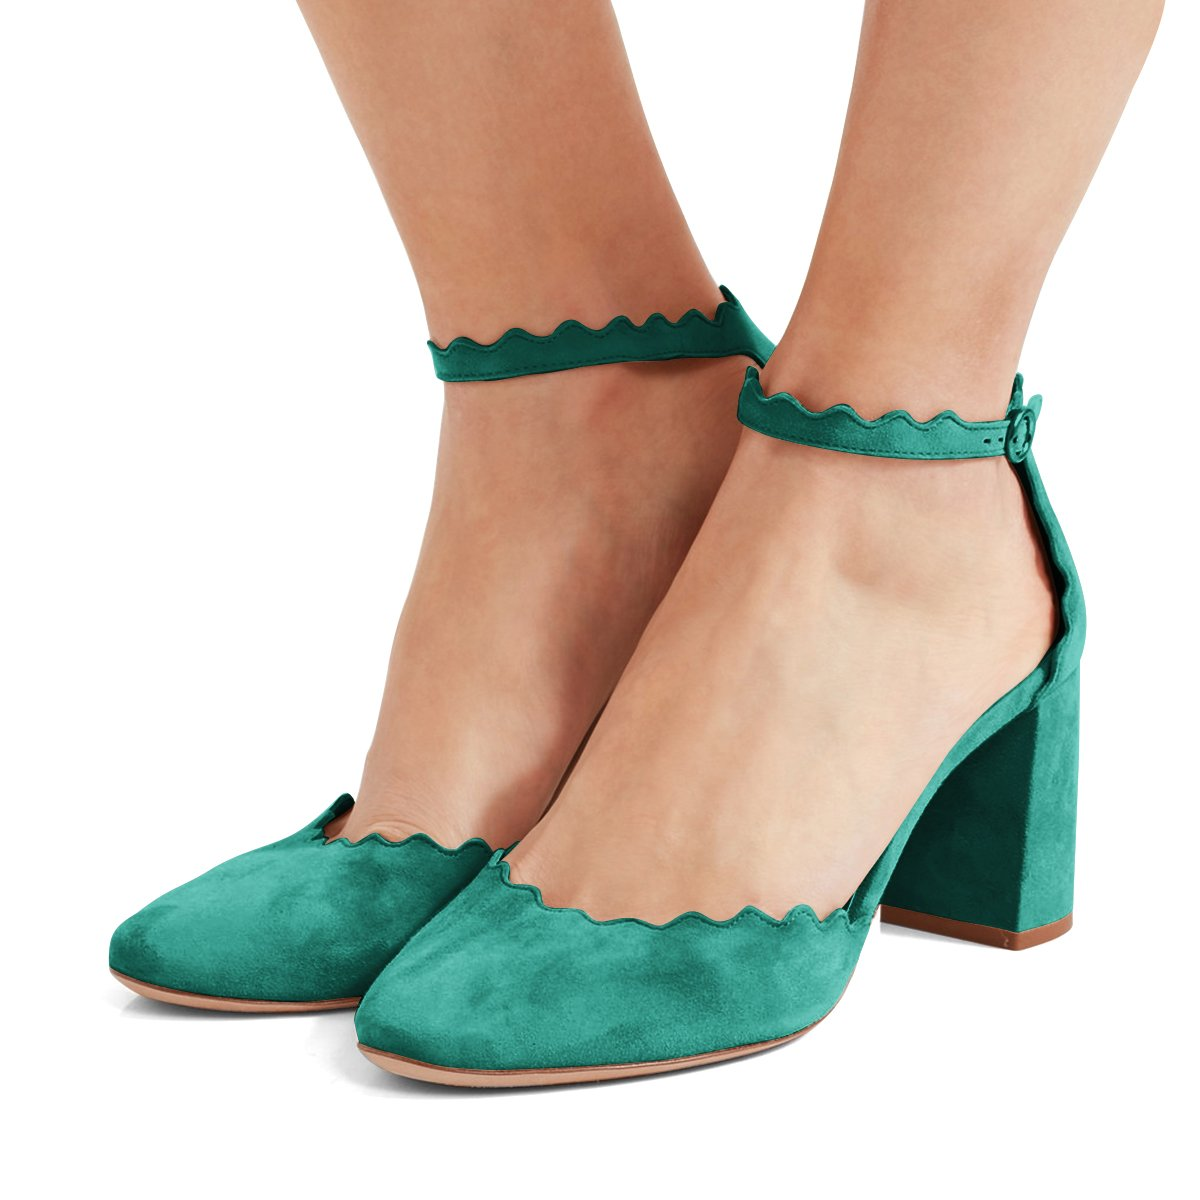 FSJ Women Comfortable Ankle Strap Pumps Block Chunky Heels Round Toe D'Orsay Shoes Size 4-15 US B078HVYQMC 9.5 M US|Turquoise